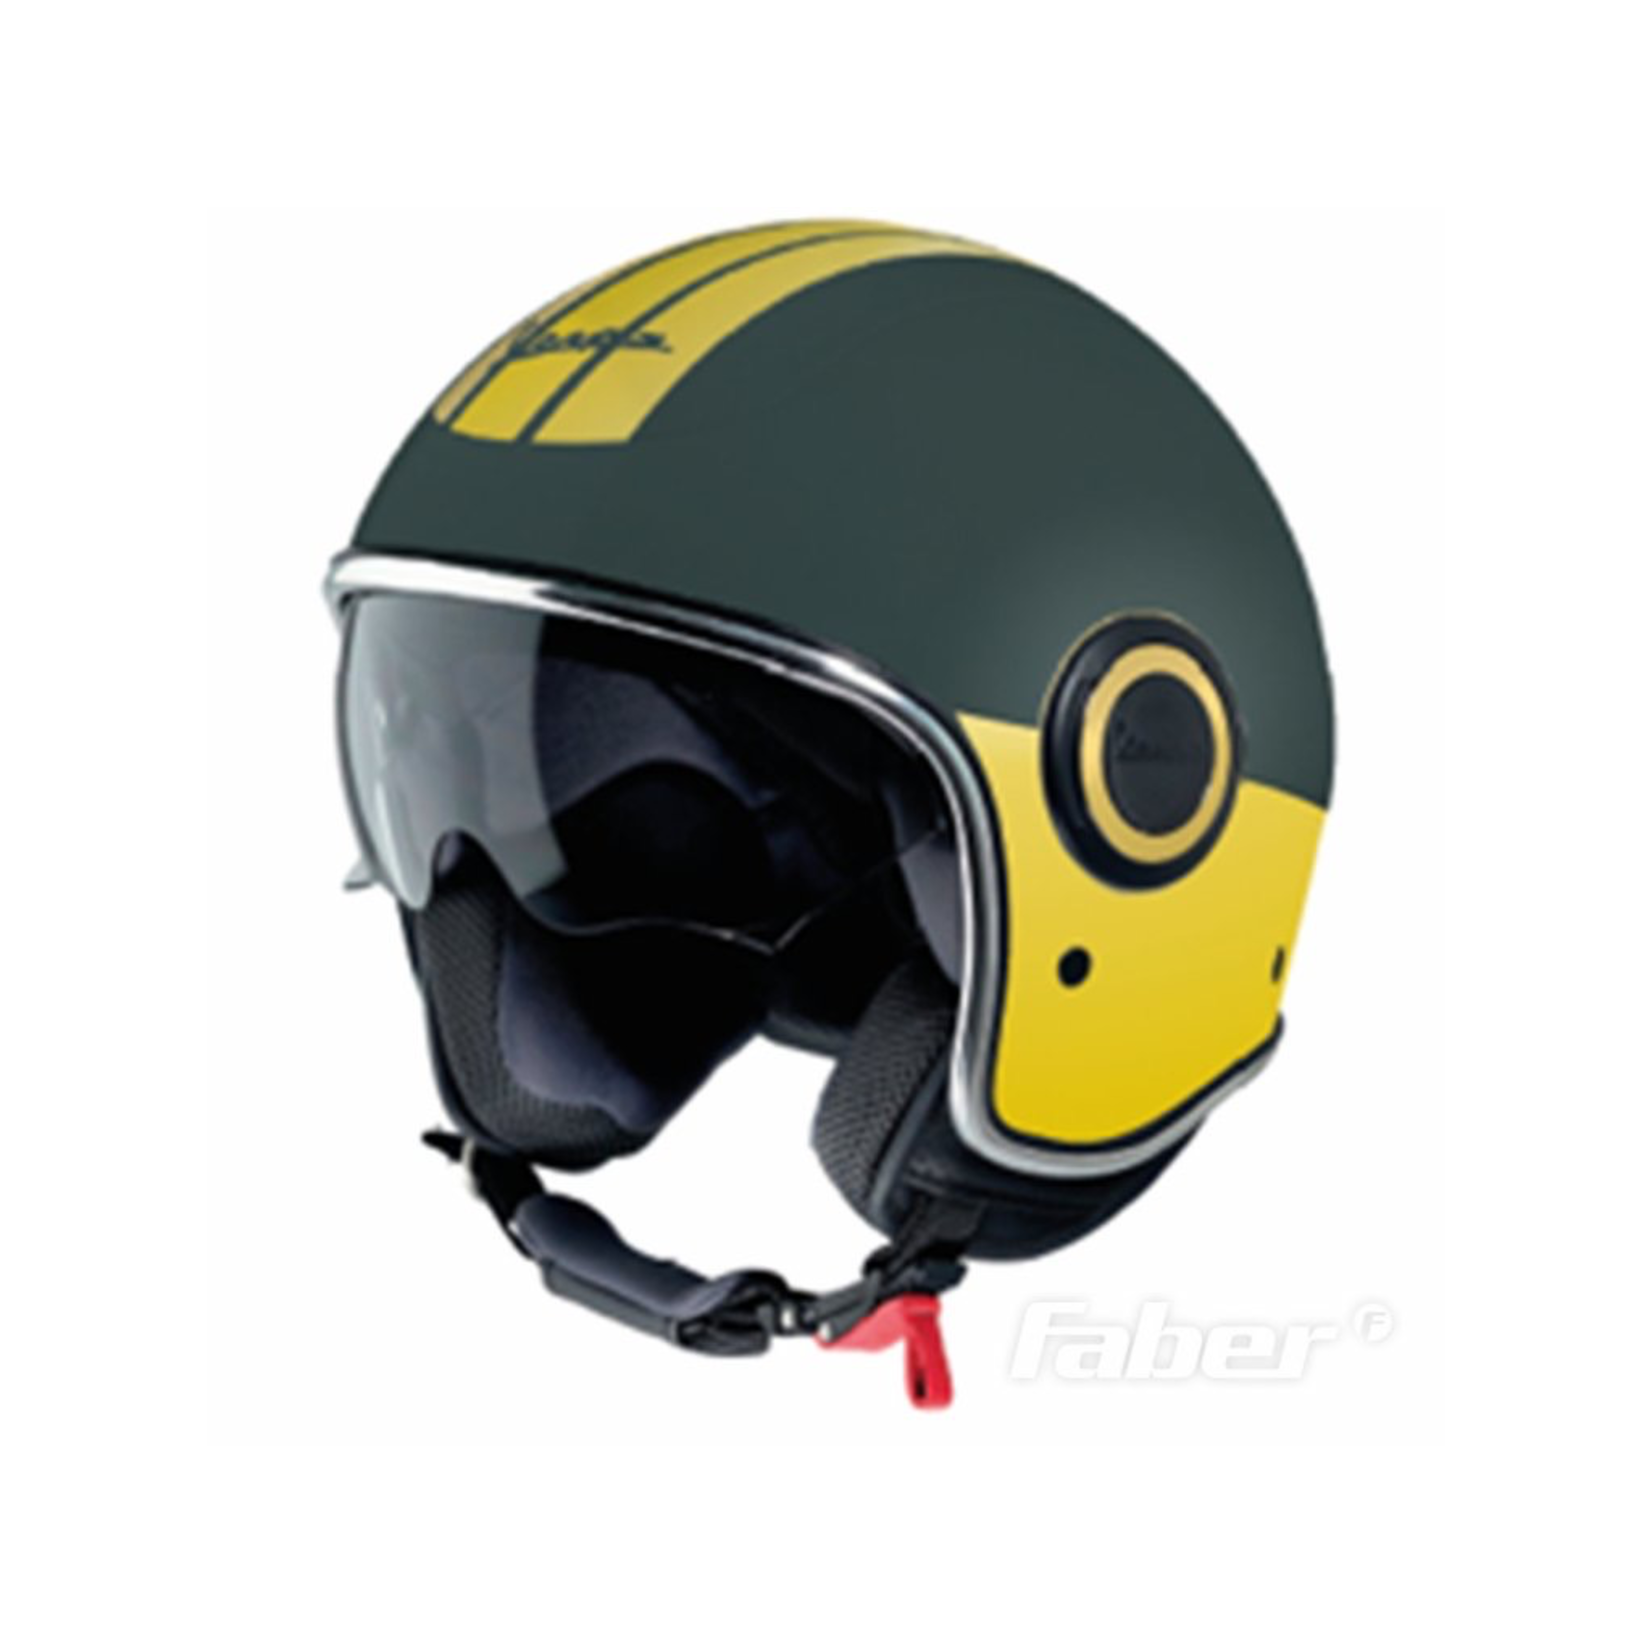 Apparel Helmet, Vespa VJ 60's Racing Edition